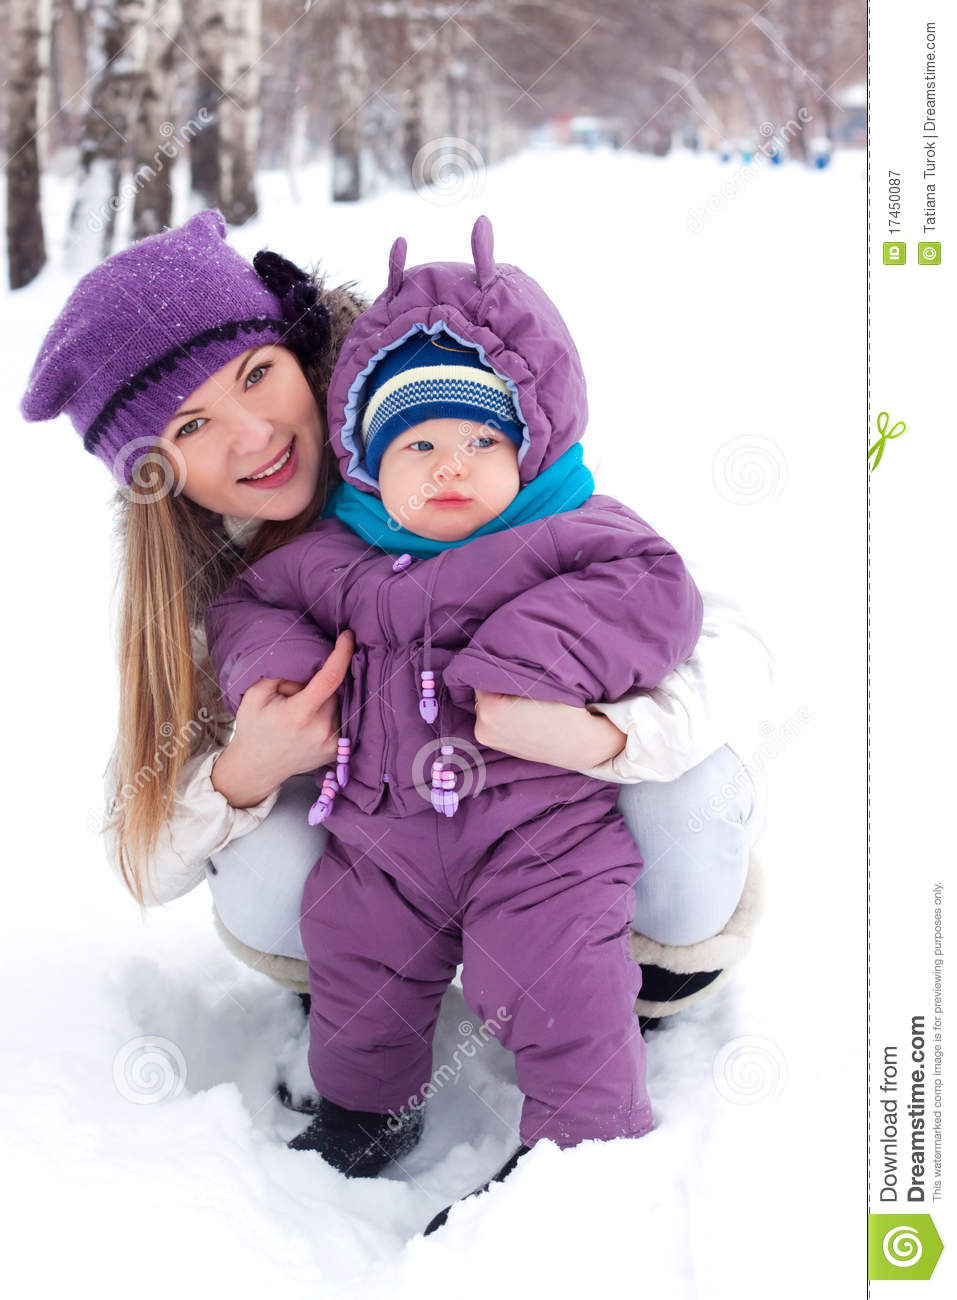 Mother holding a baby, snow, winter park, walk